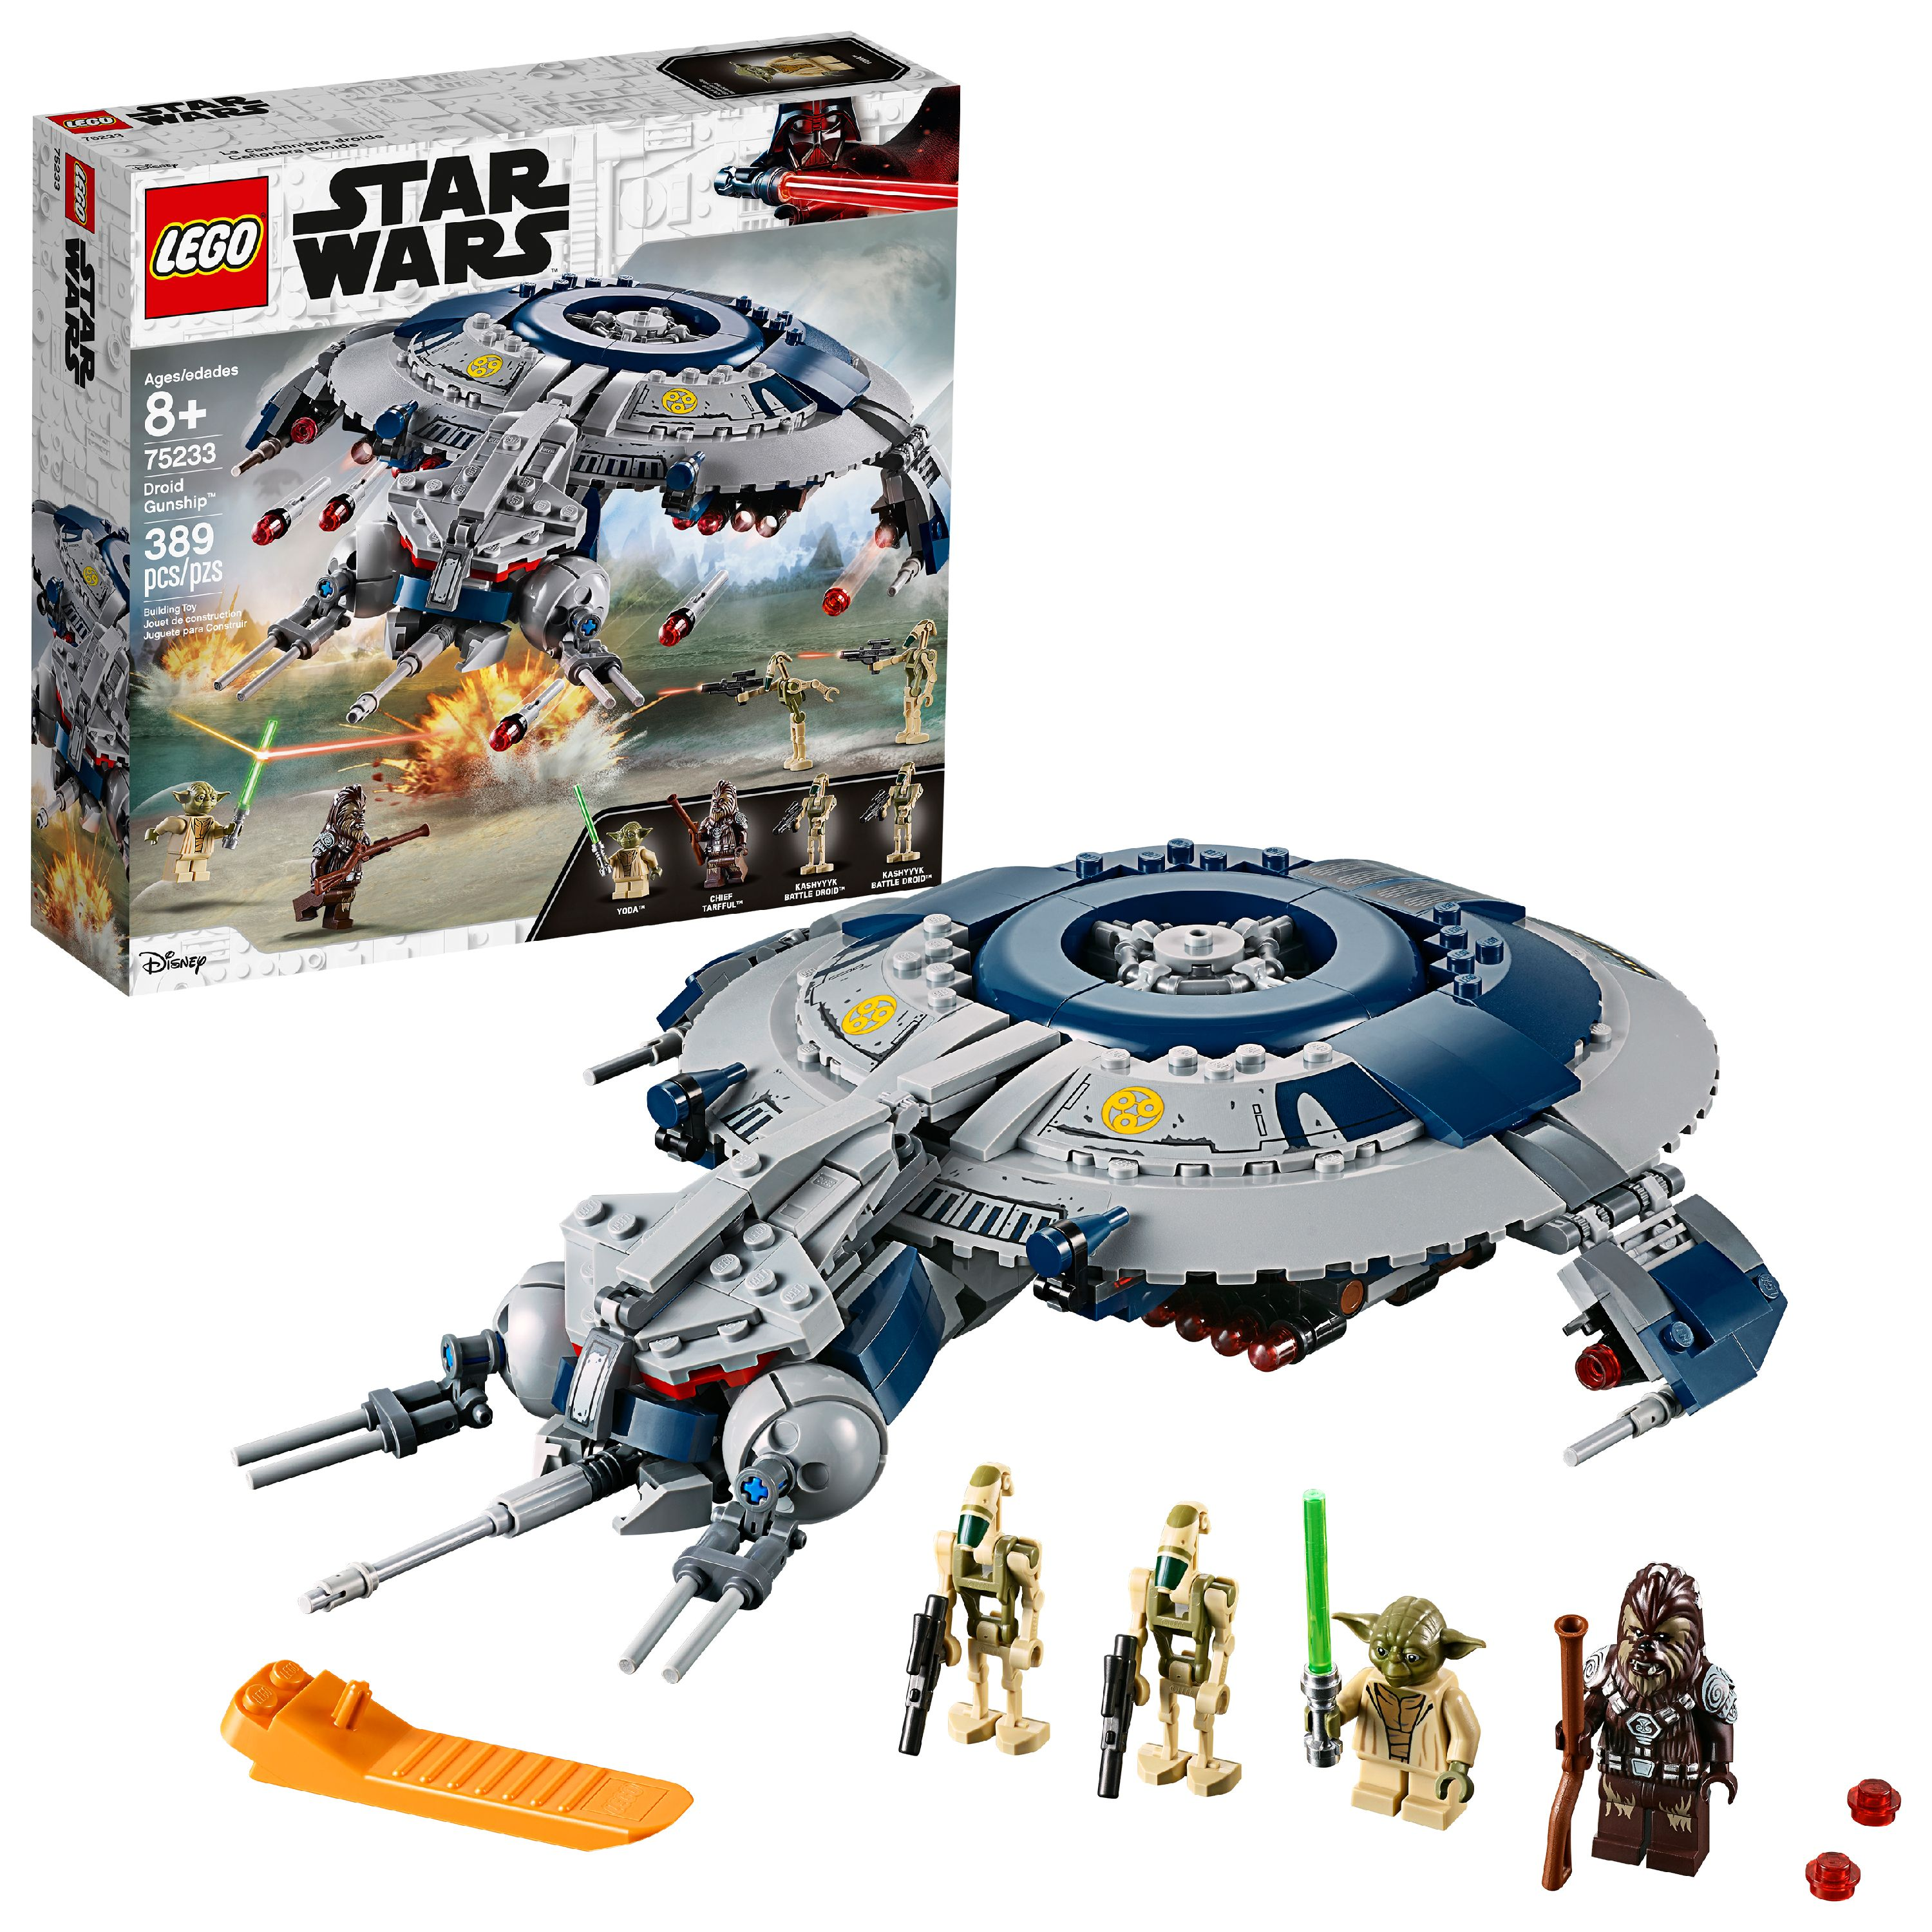 LEGO Star Wars TM Droid Gunship 75233 Building Set (329 Pieces)